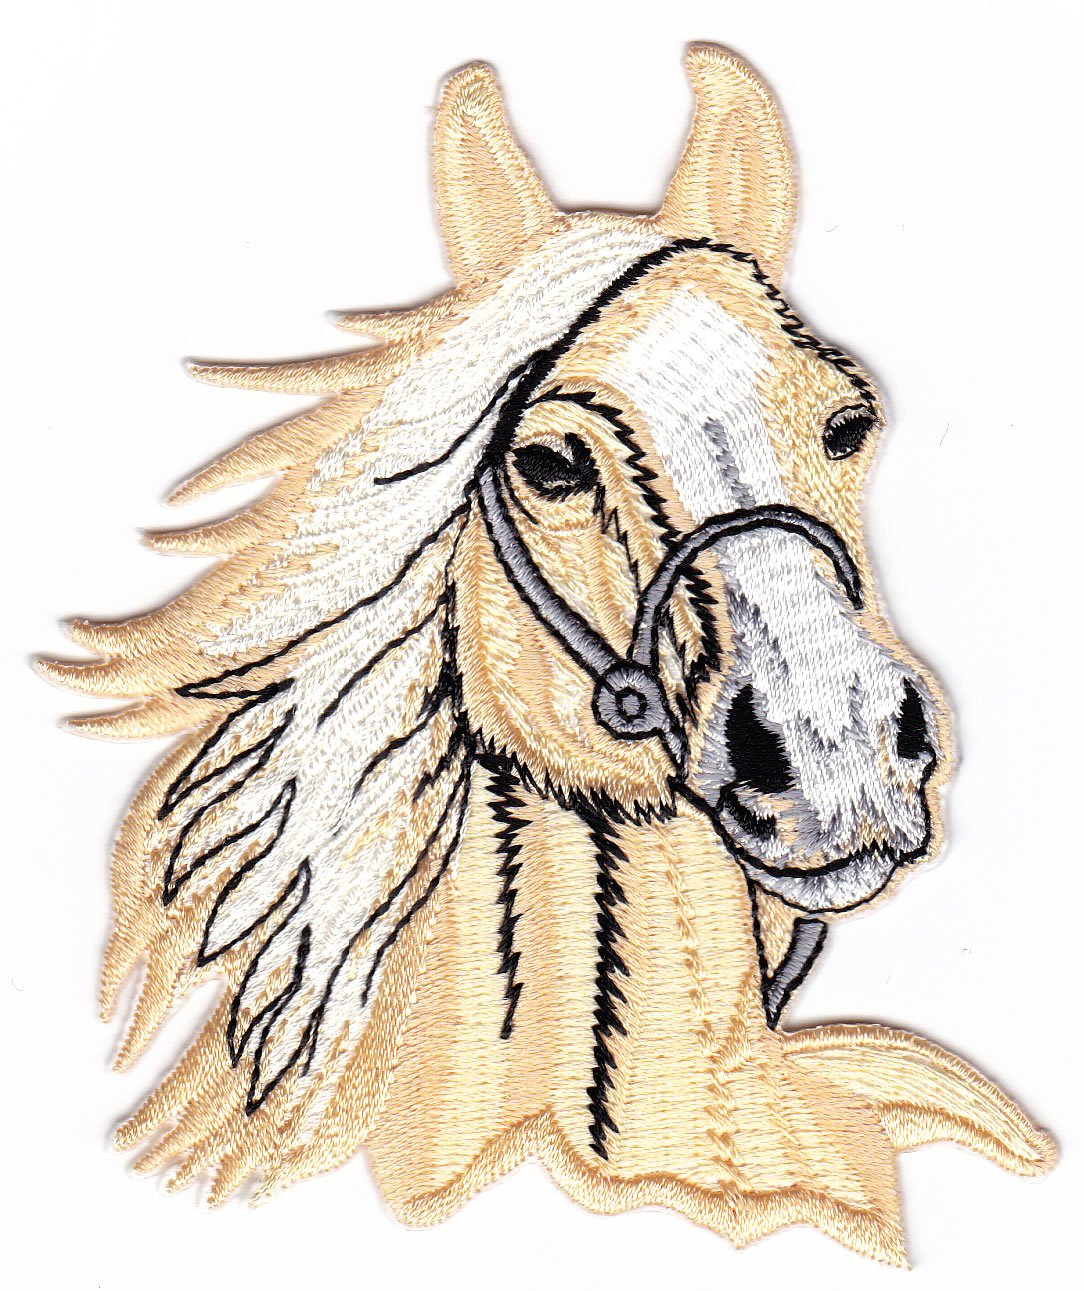 Beige Horse Head Riding Farm Sew-on Iron-on Patches Kids Children Baby Embroidered Applique by thaipatches   B00J0SPYEA